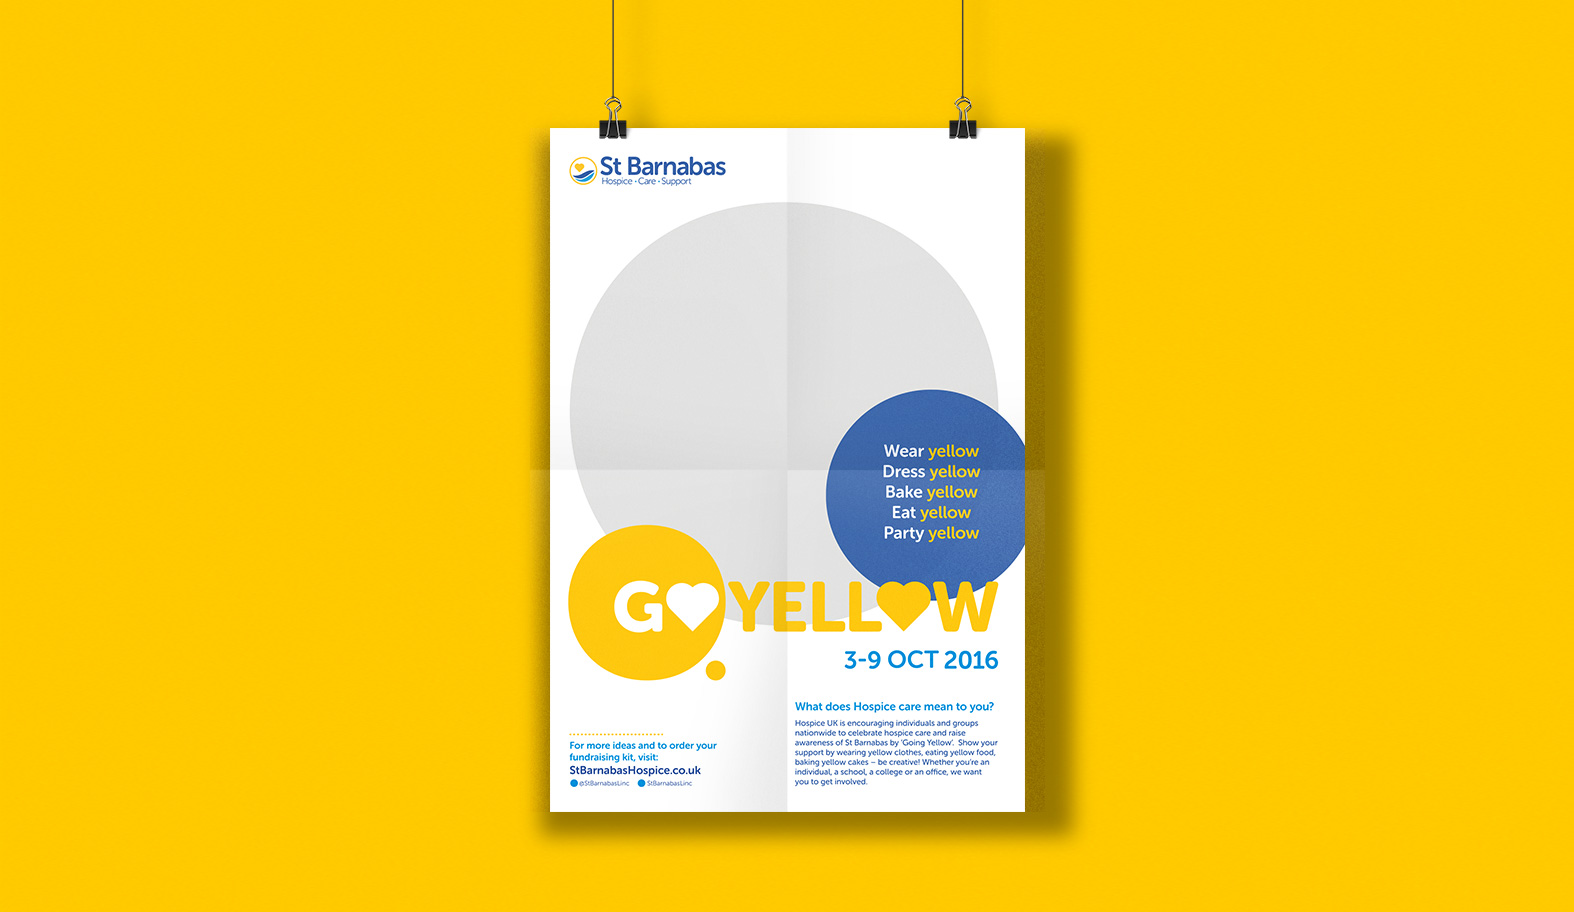 Go Yellow poster design